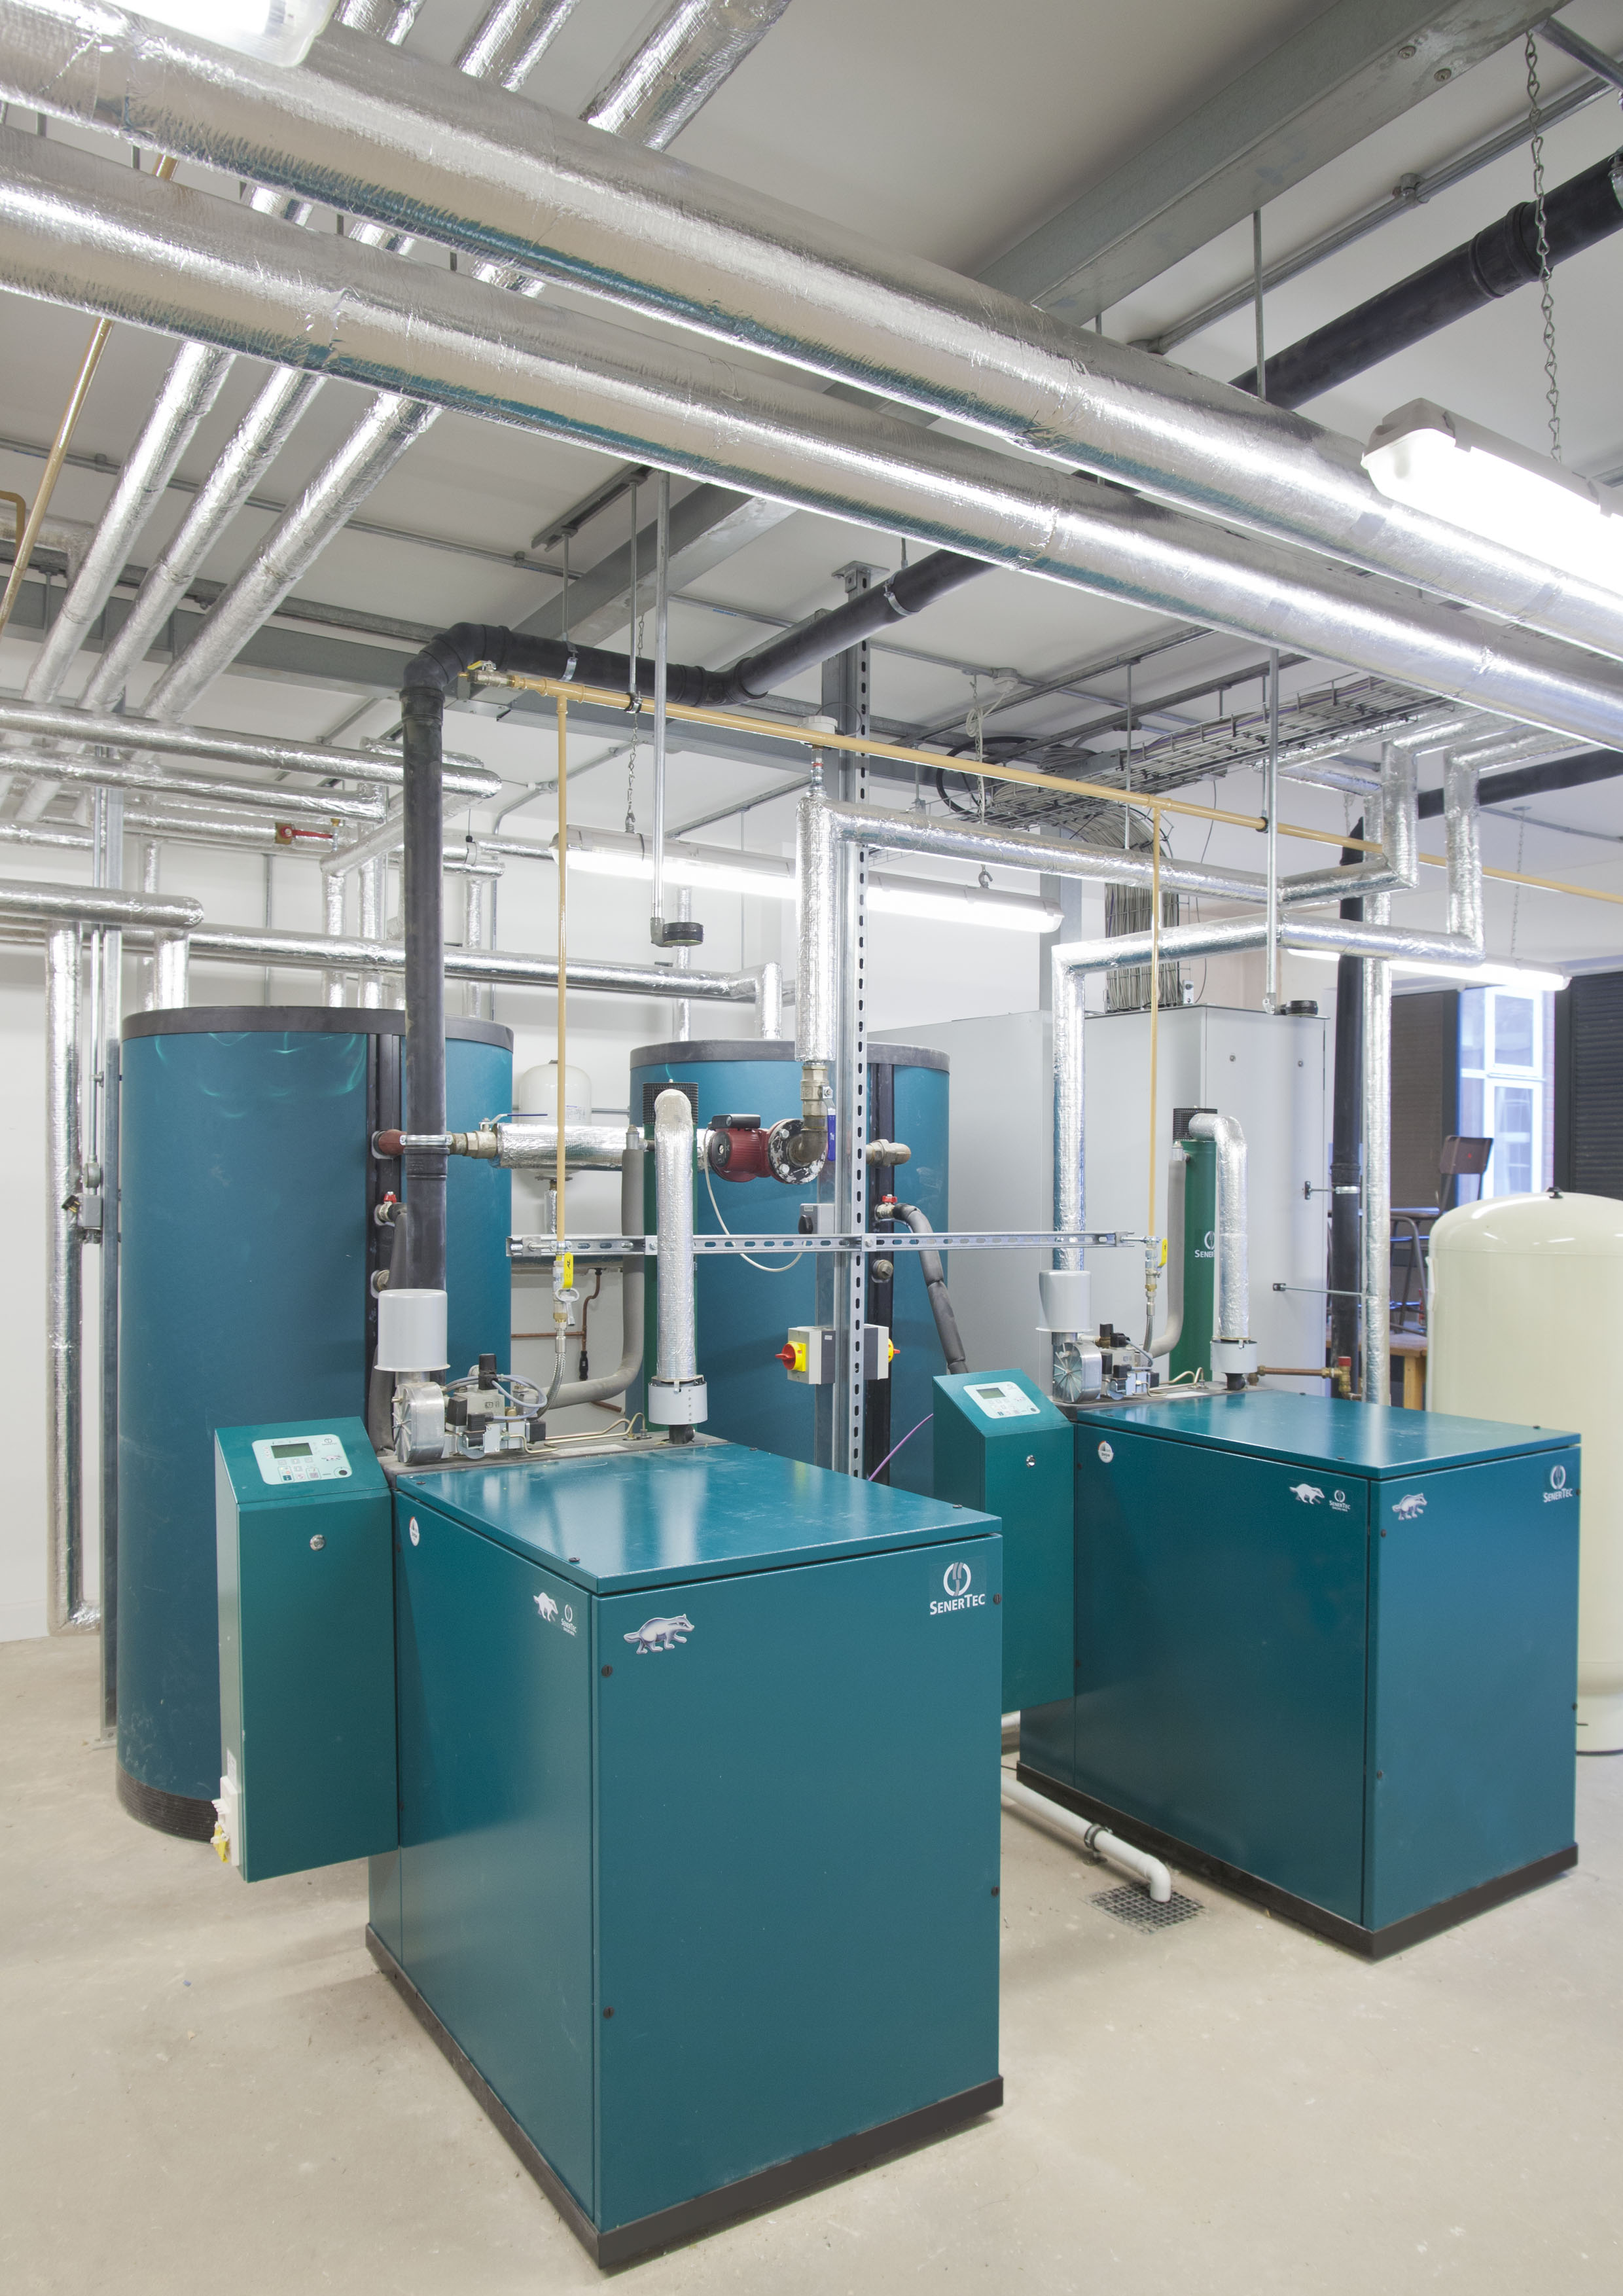 BAXI Dachs mini-CHP units installed at Oakham School